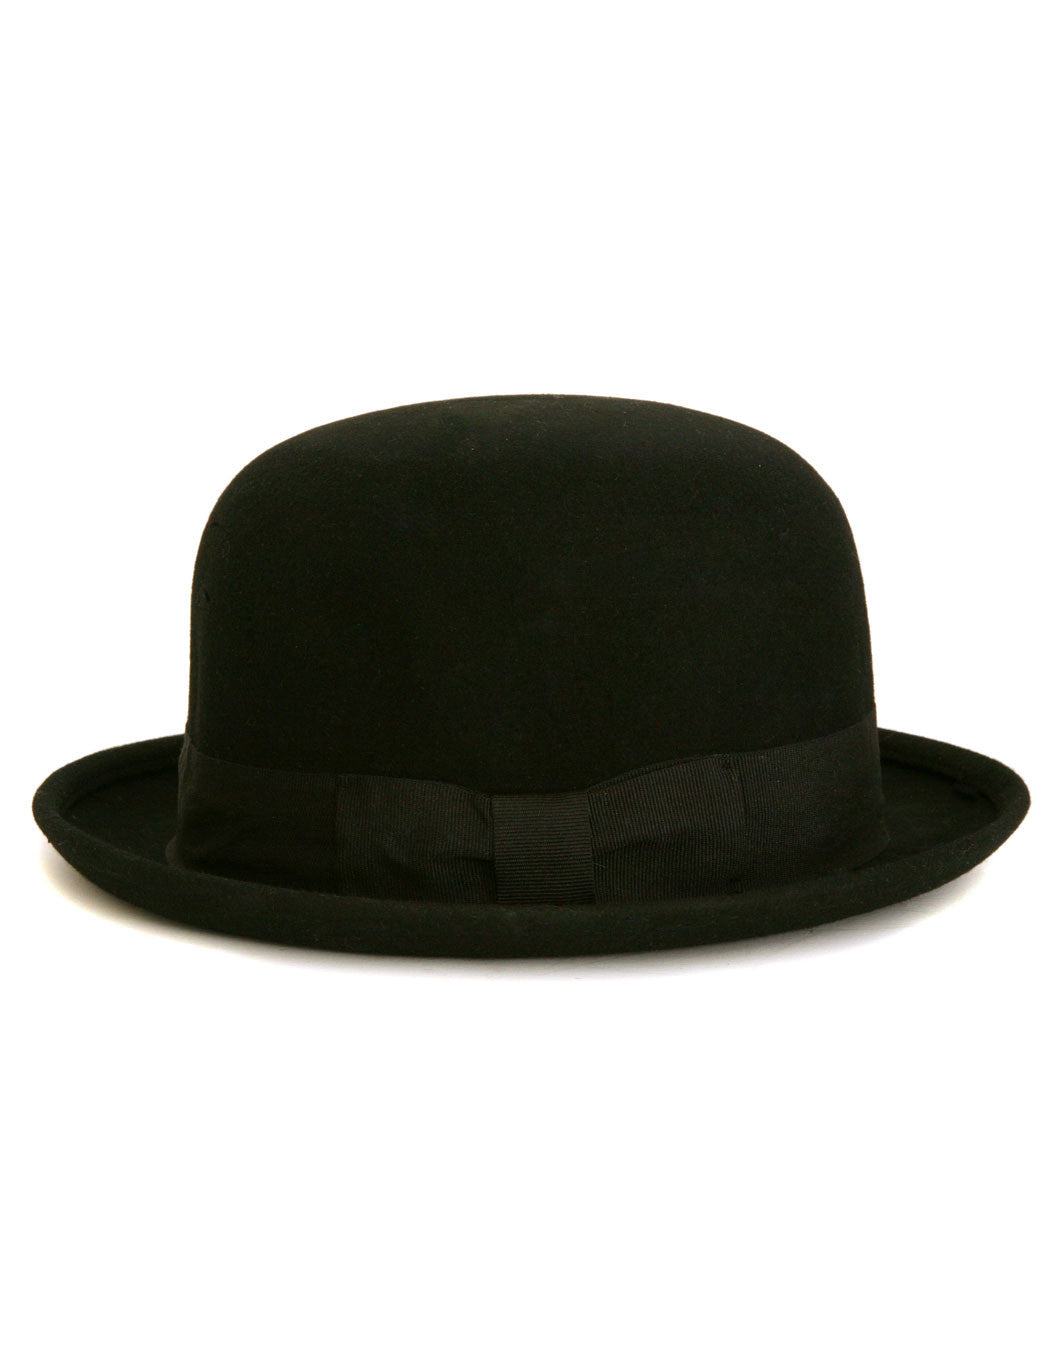 Laurel Soft Bowler Hat - Black